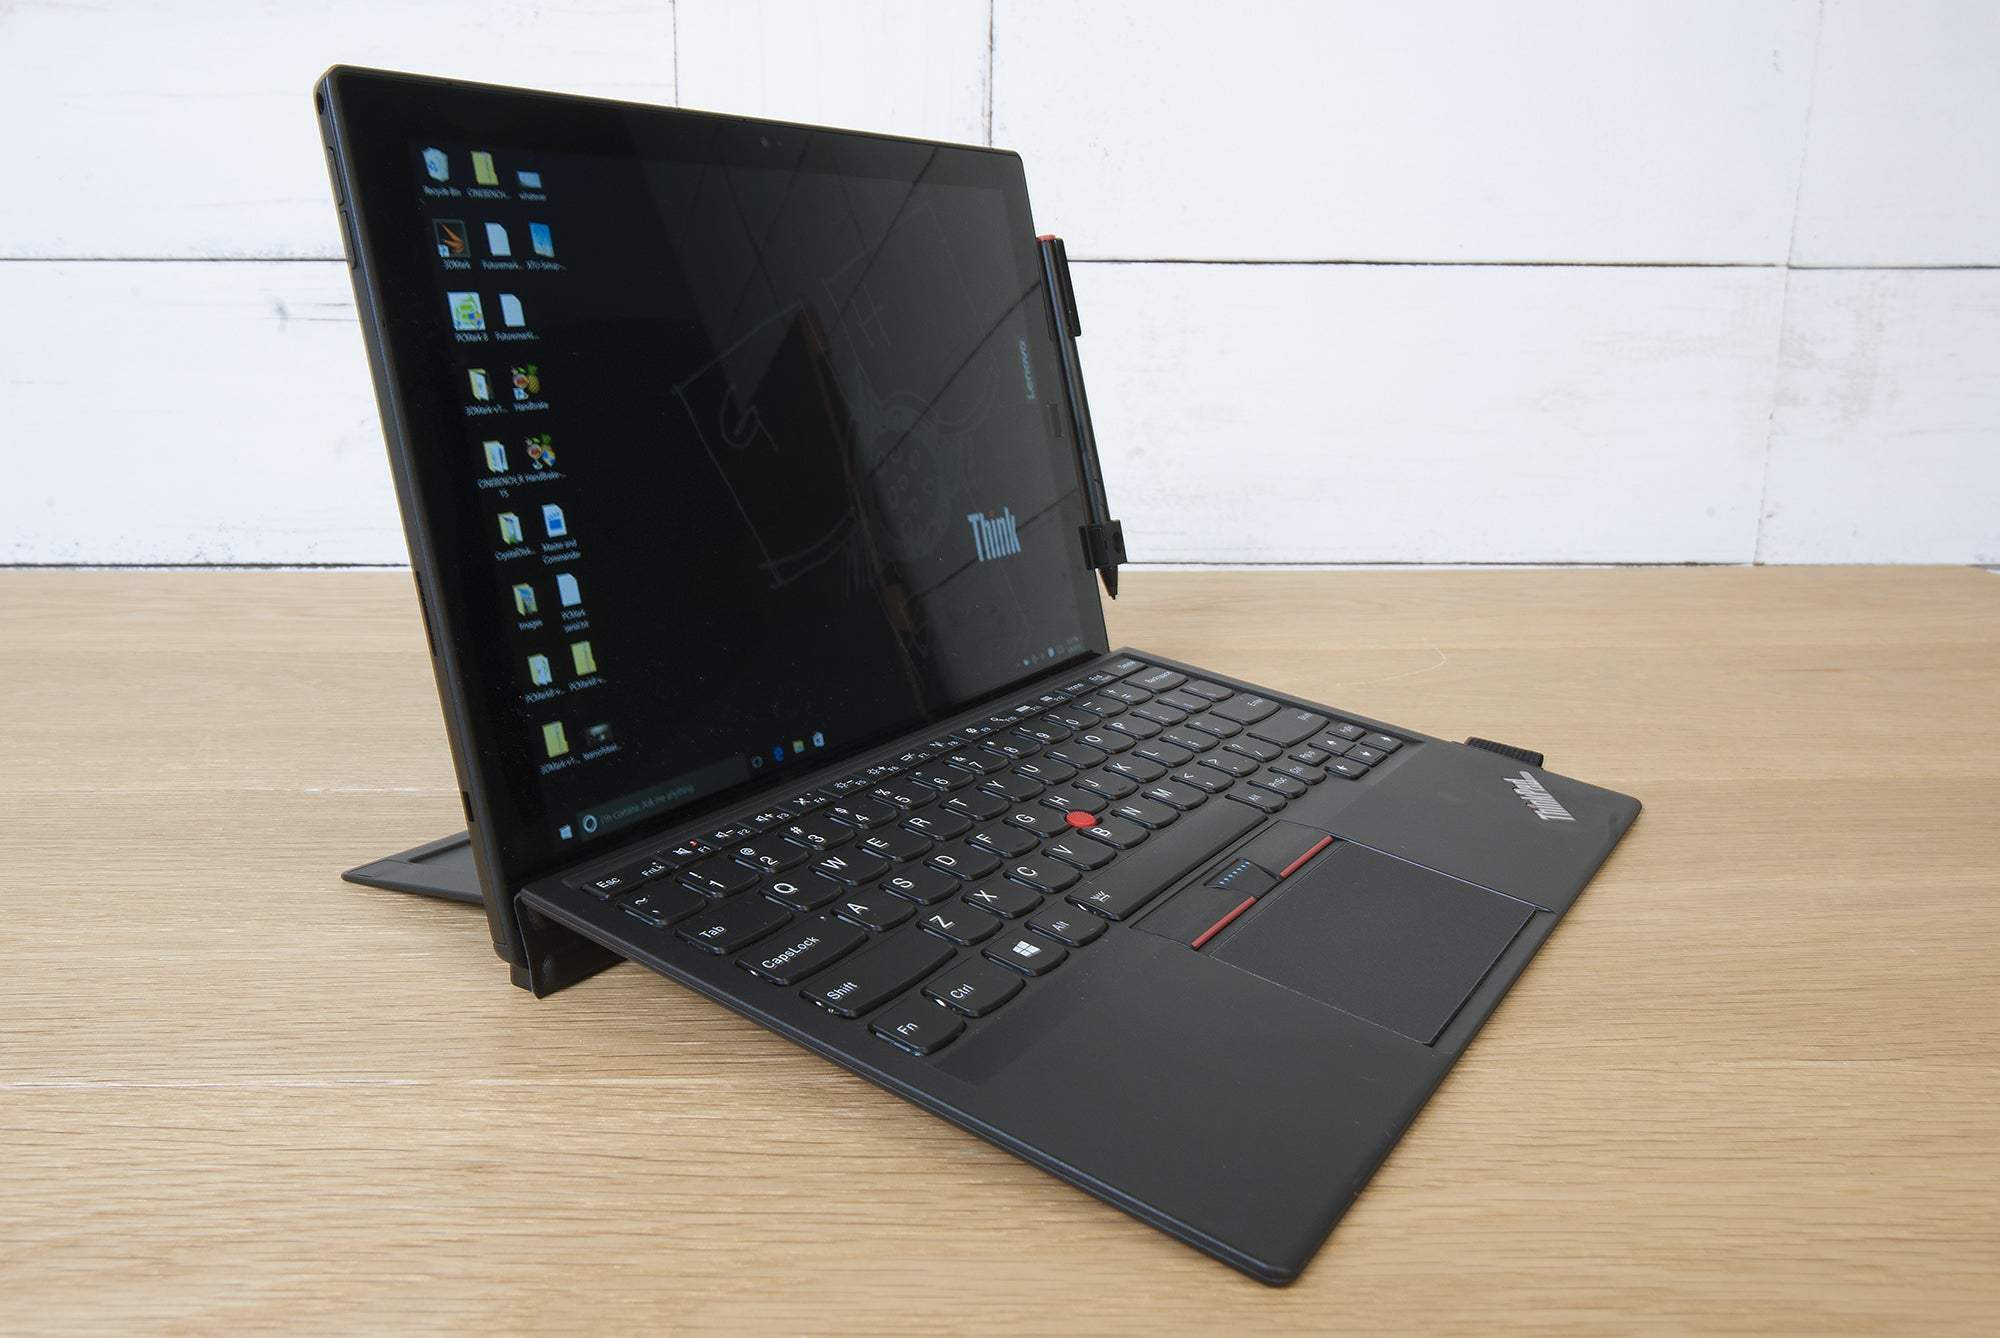 Lenovo ThinkPad X1 Tablet review: Smart design makes up for